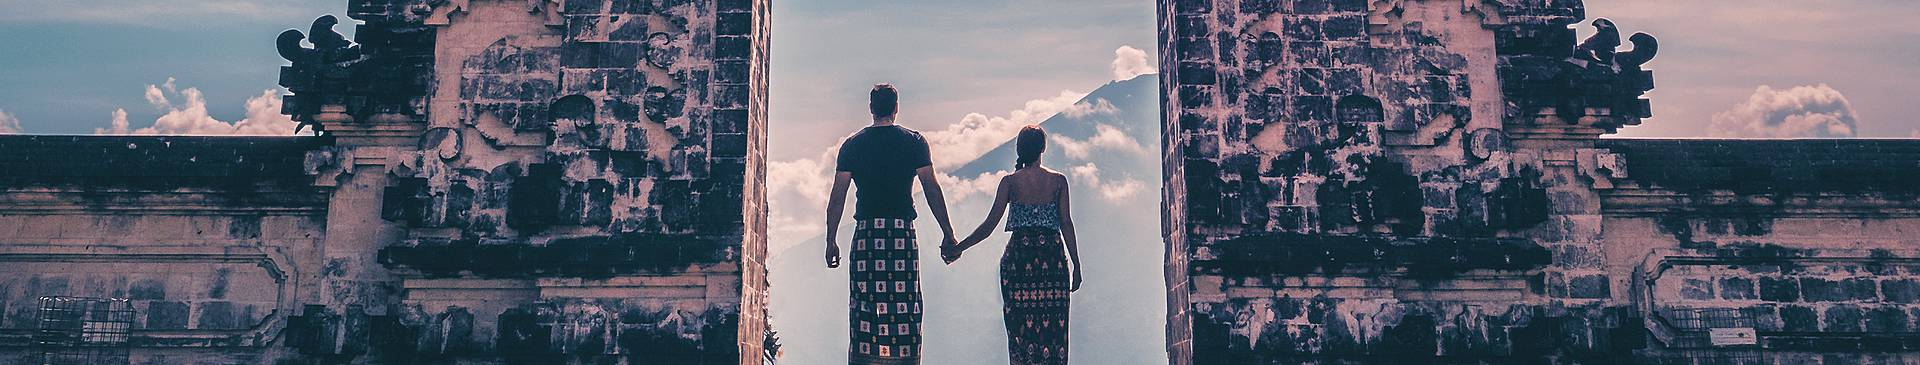 Bali trips for couples